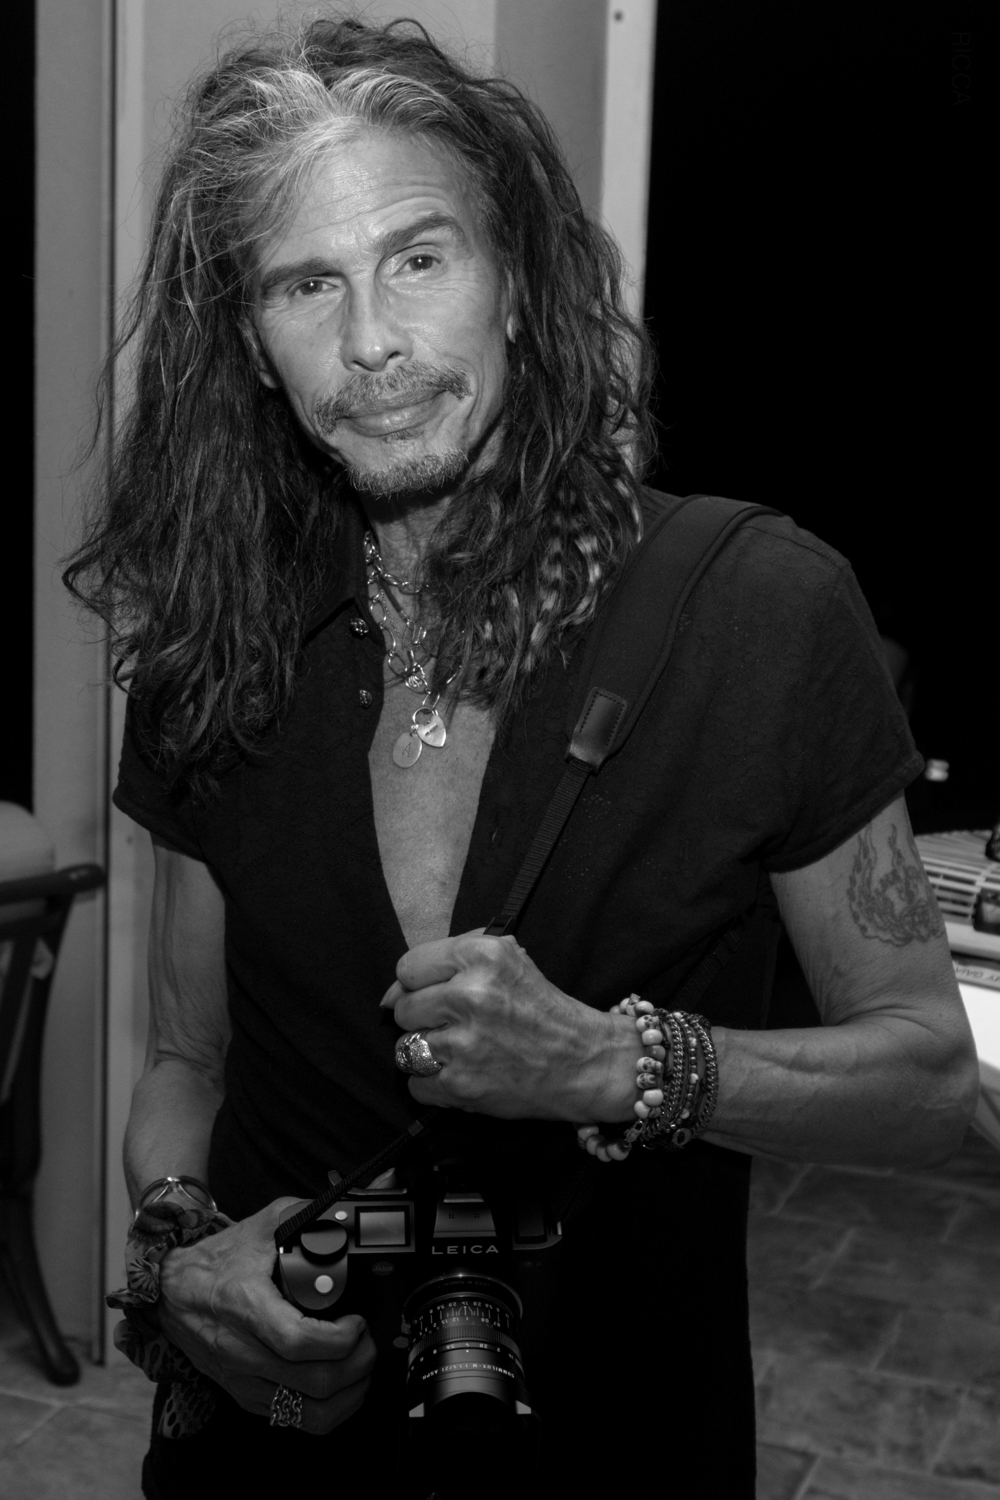 Steven Tyler and his Leica.